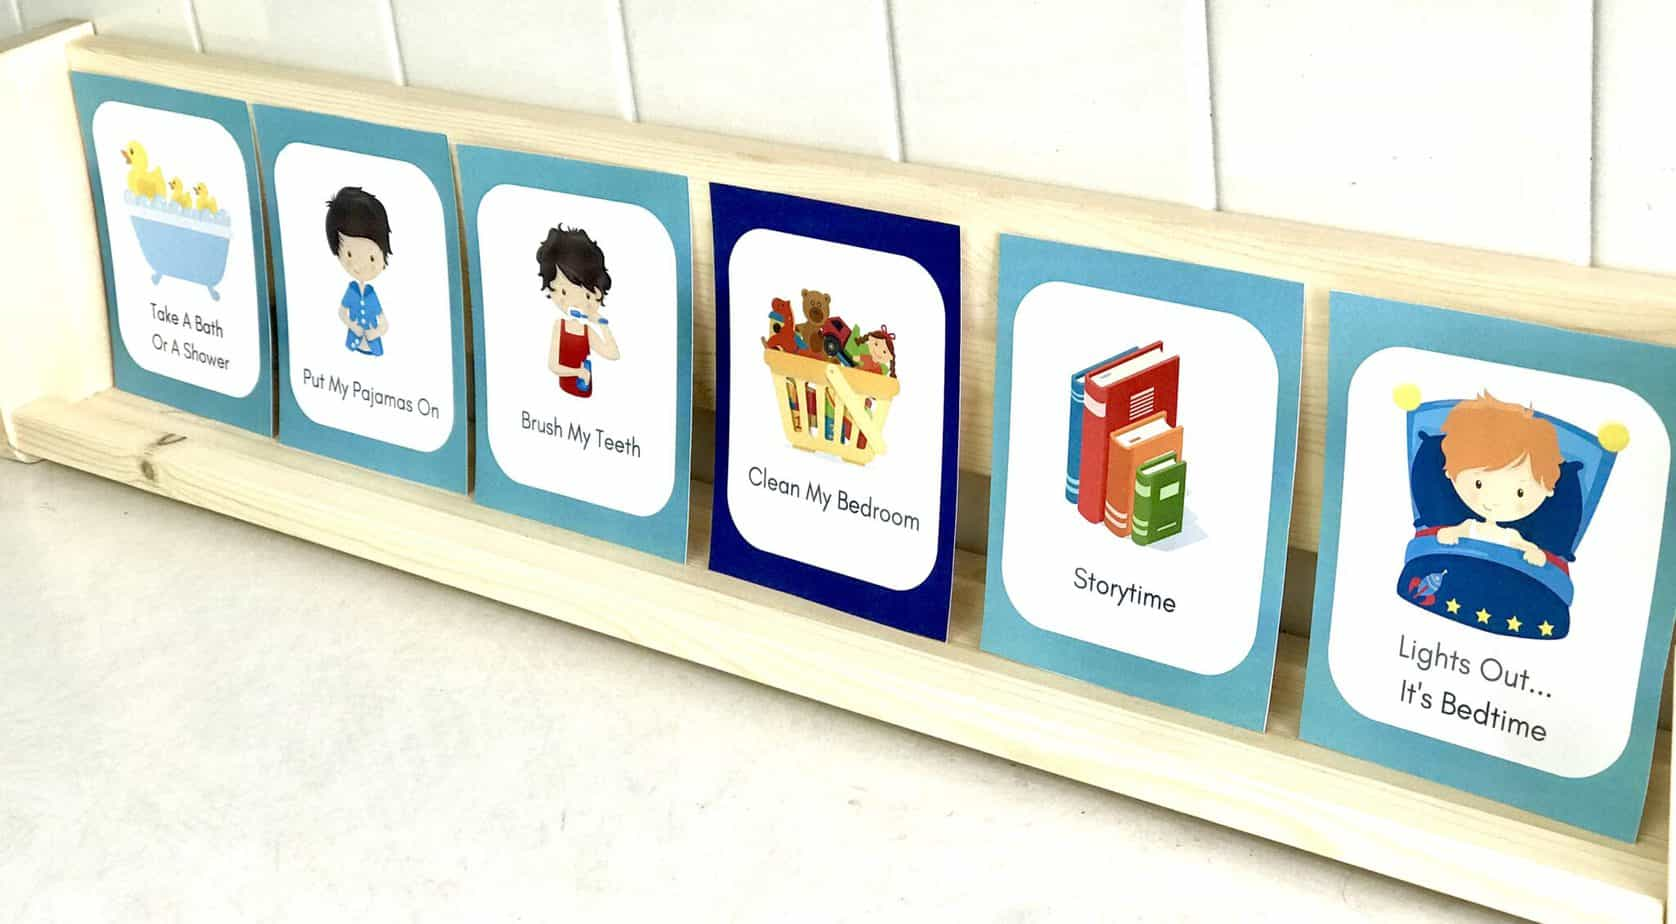 daily routine cards help kids keep a daily schedule and follow a predictable routine that makes them feel safe